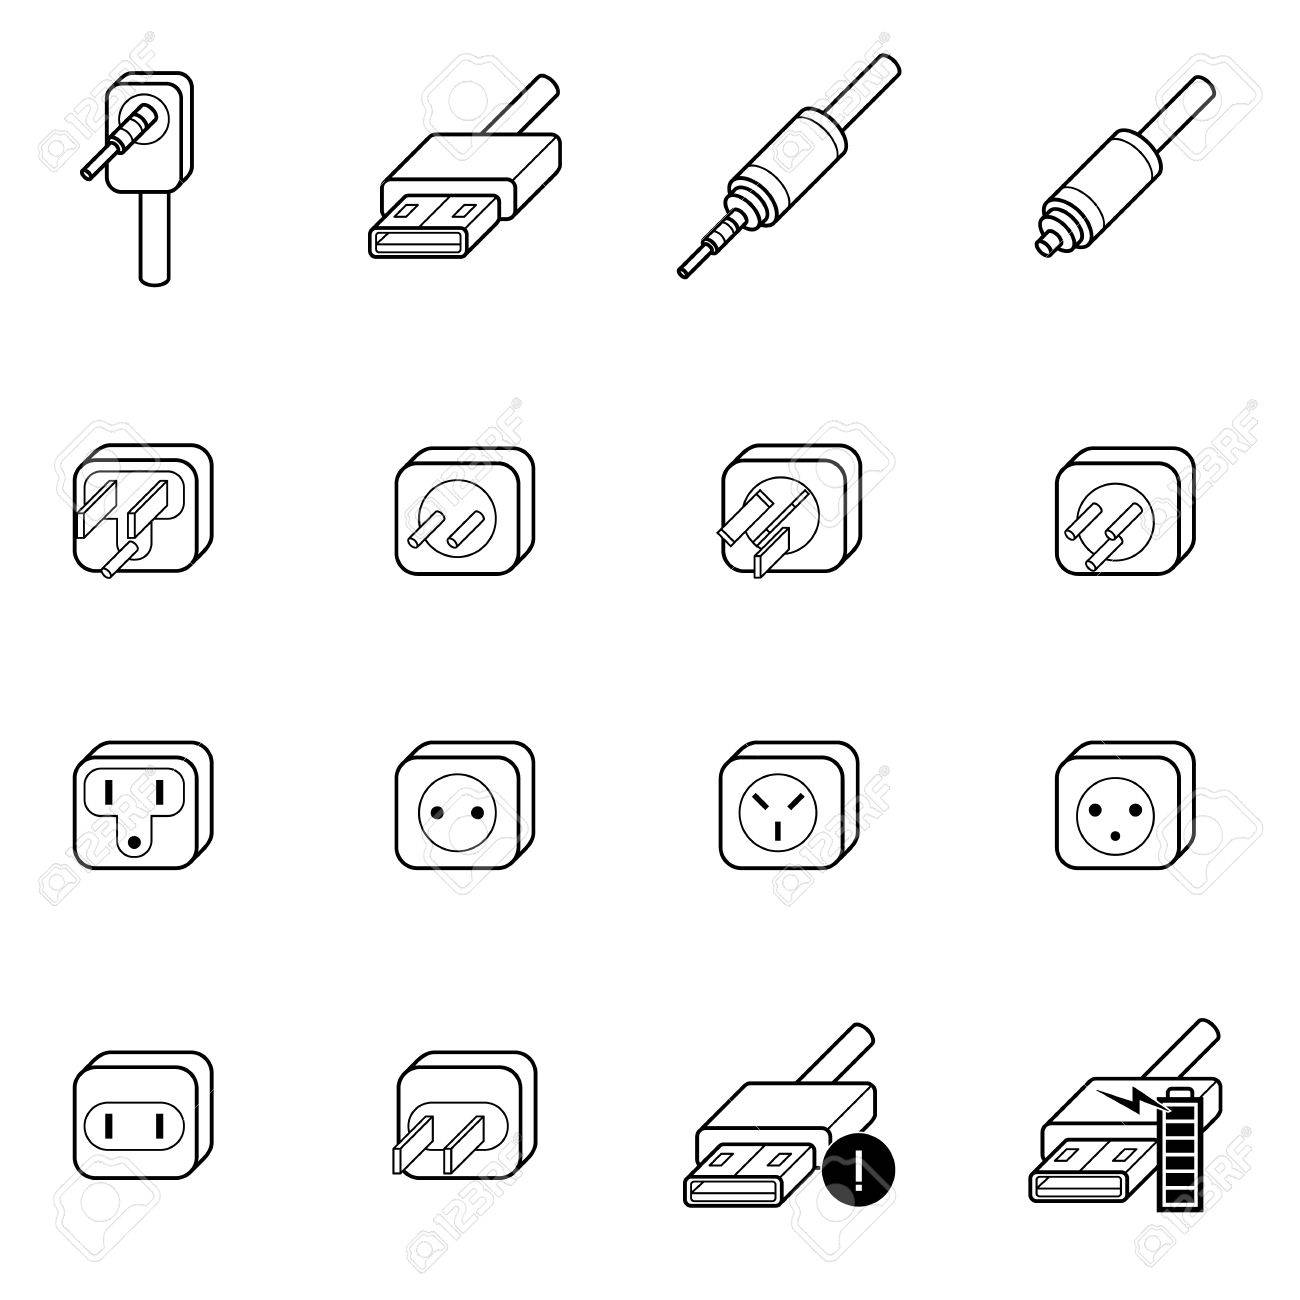 Wire Icons Set Center Aabrands A Audiopulseelectronicsawa 8300f001906awajpg Electric Outlet Cable And Plug Vector Illustration Rh 123rf Com Technology Icon Ach